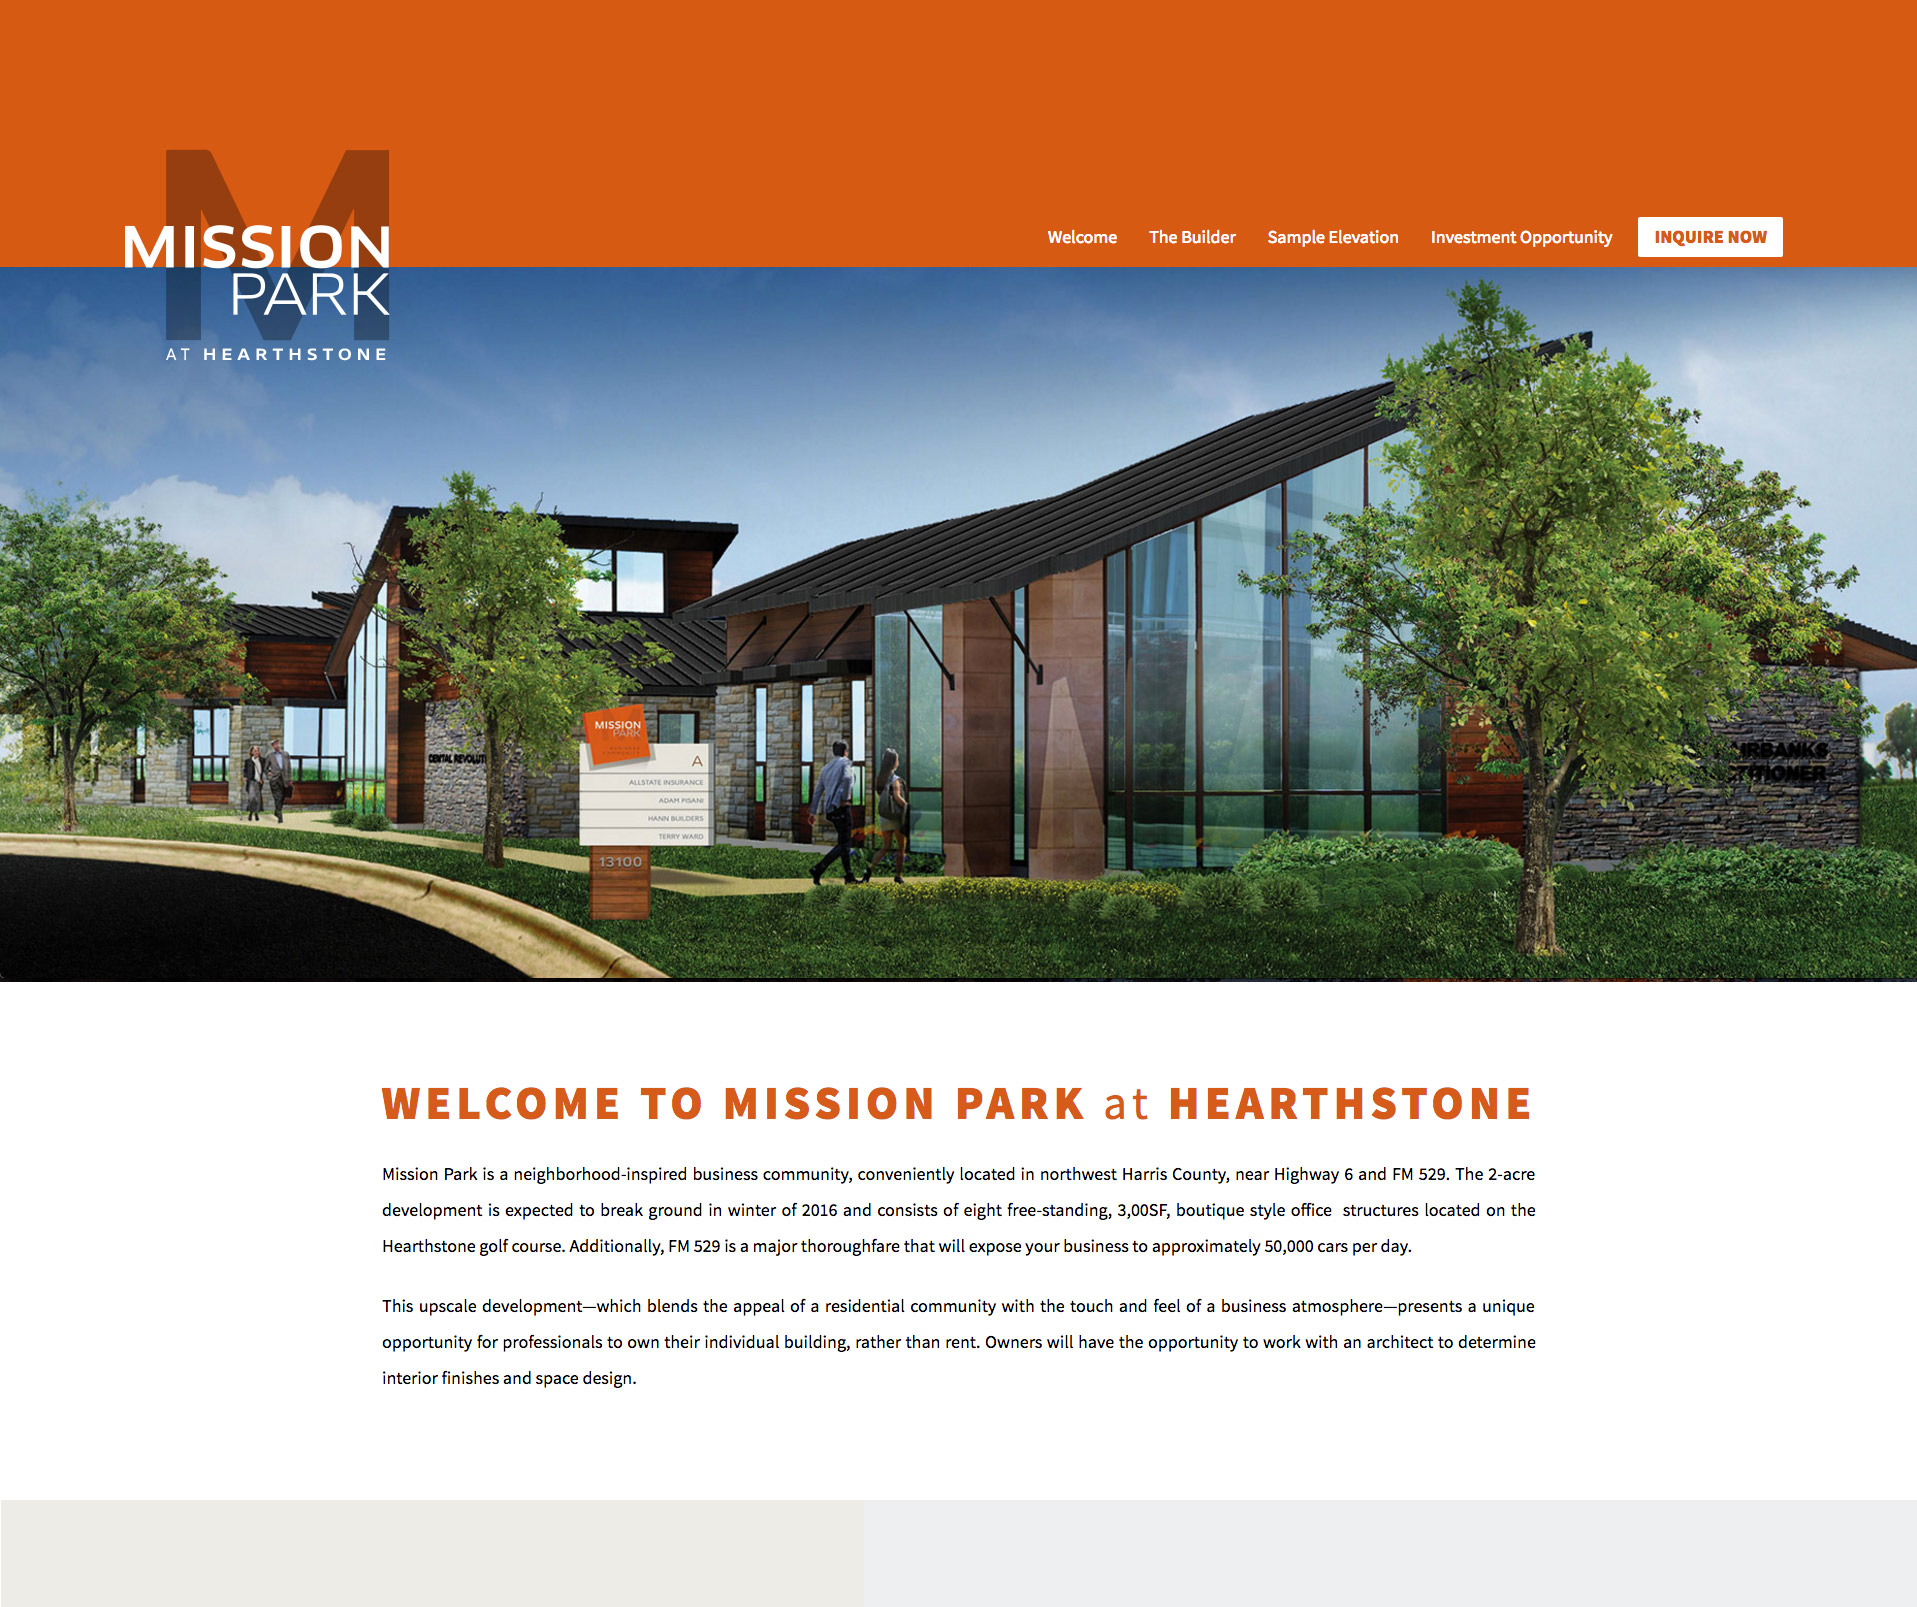 Mission Park at Hearthstone